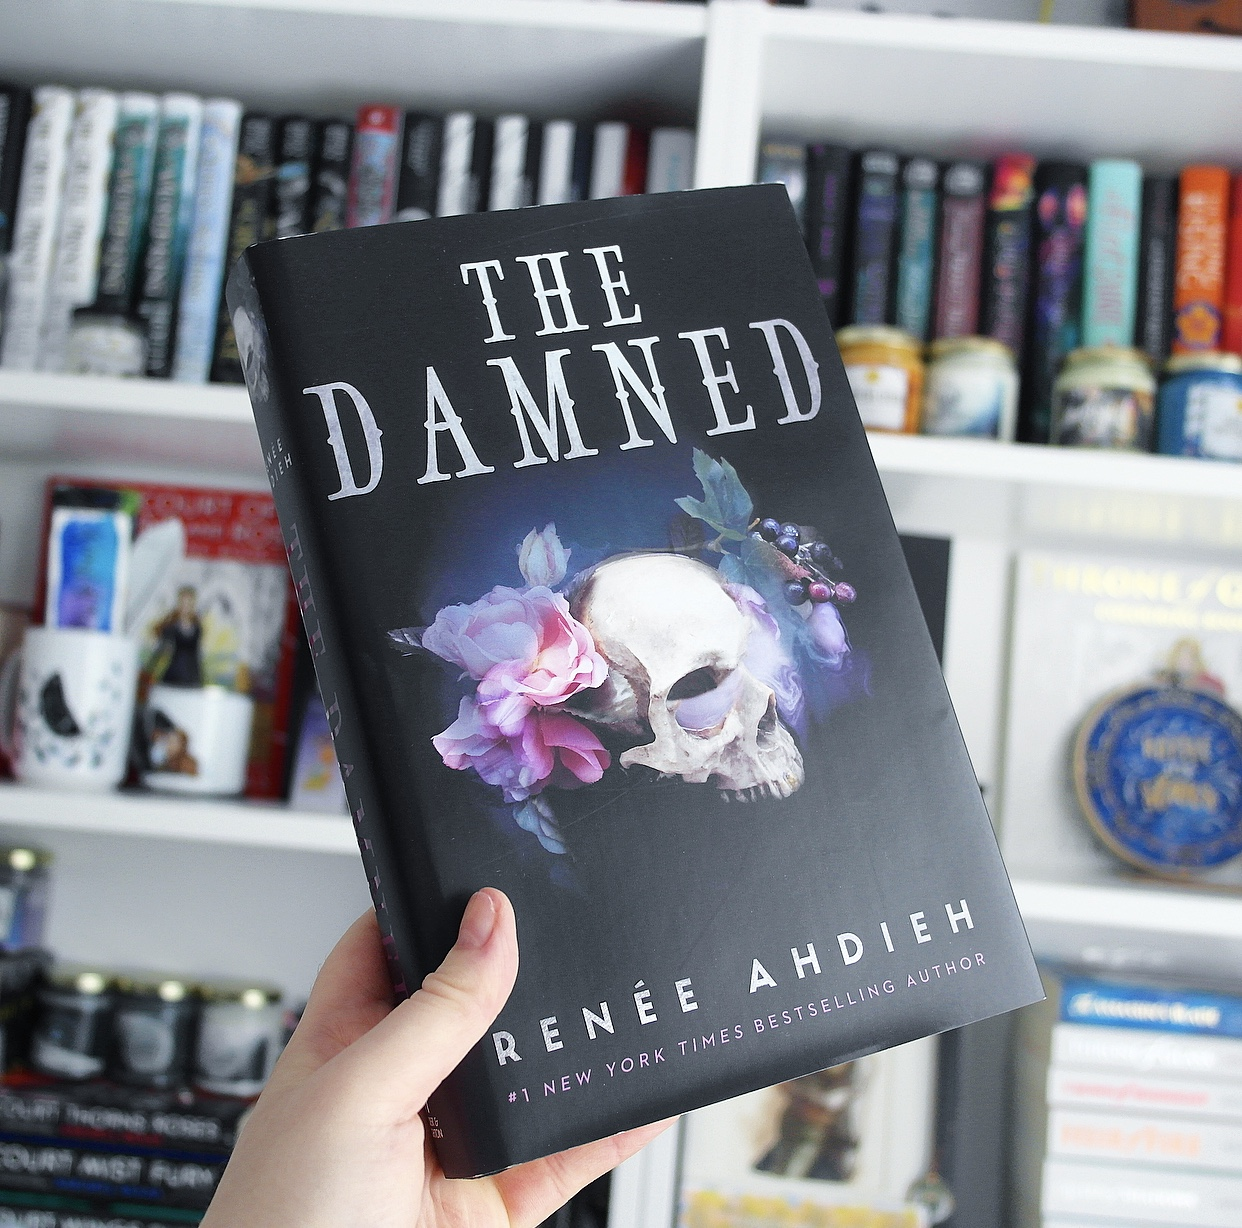 Spoiler free review of The Damned by Renee Ahdieh